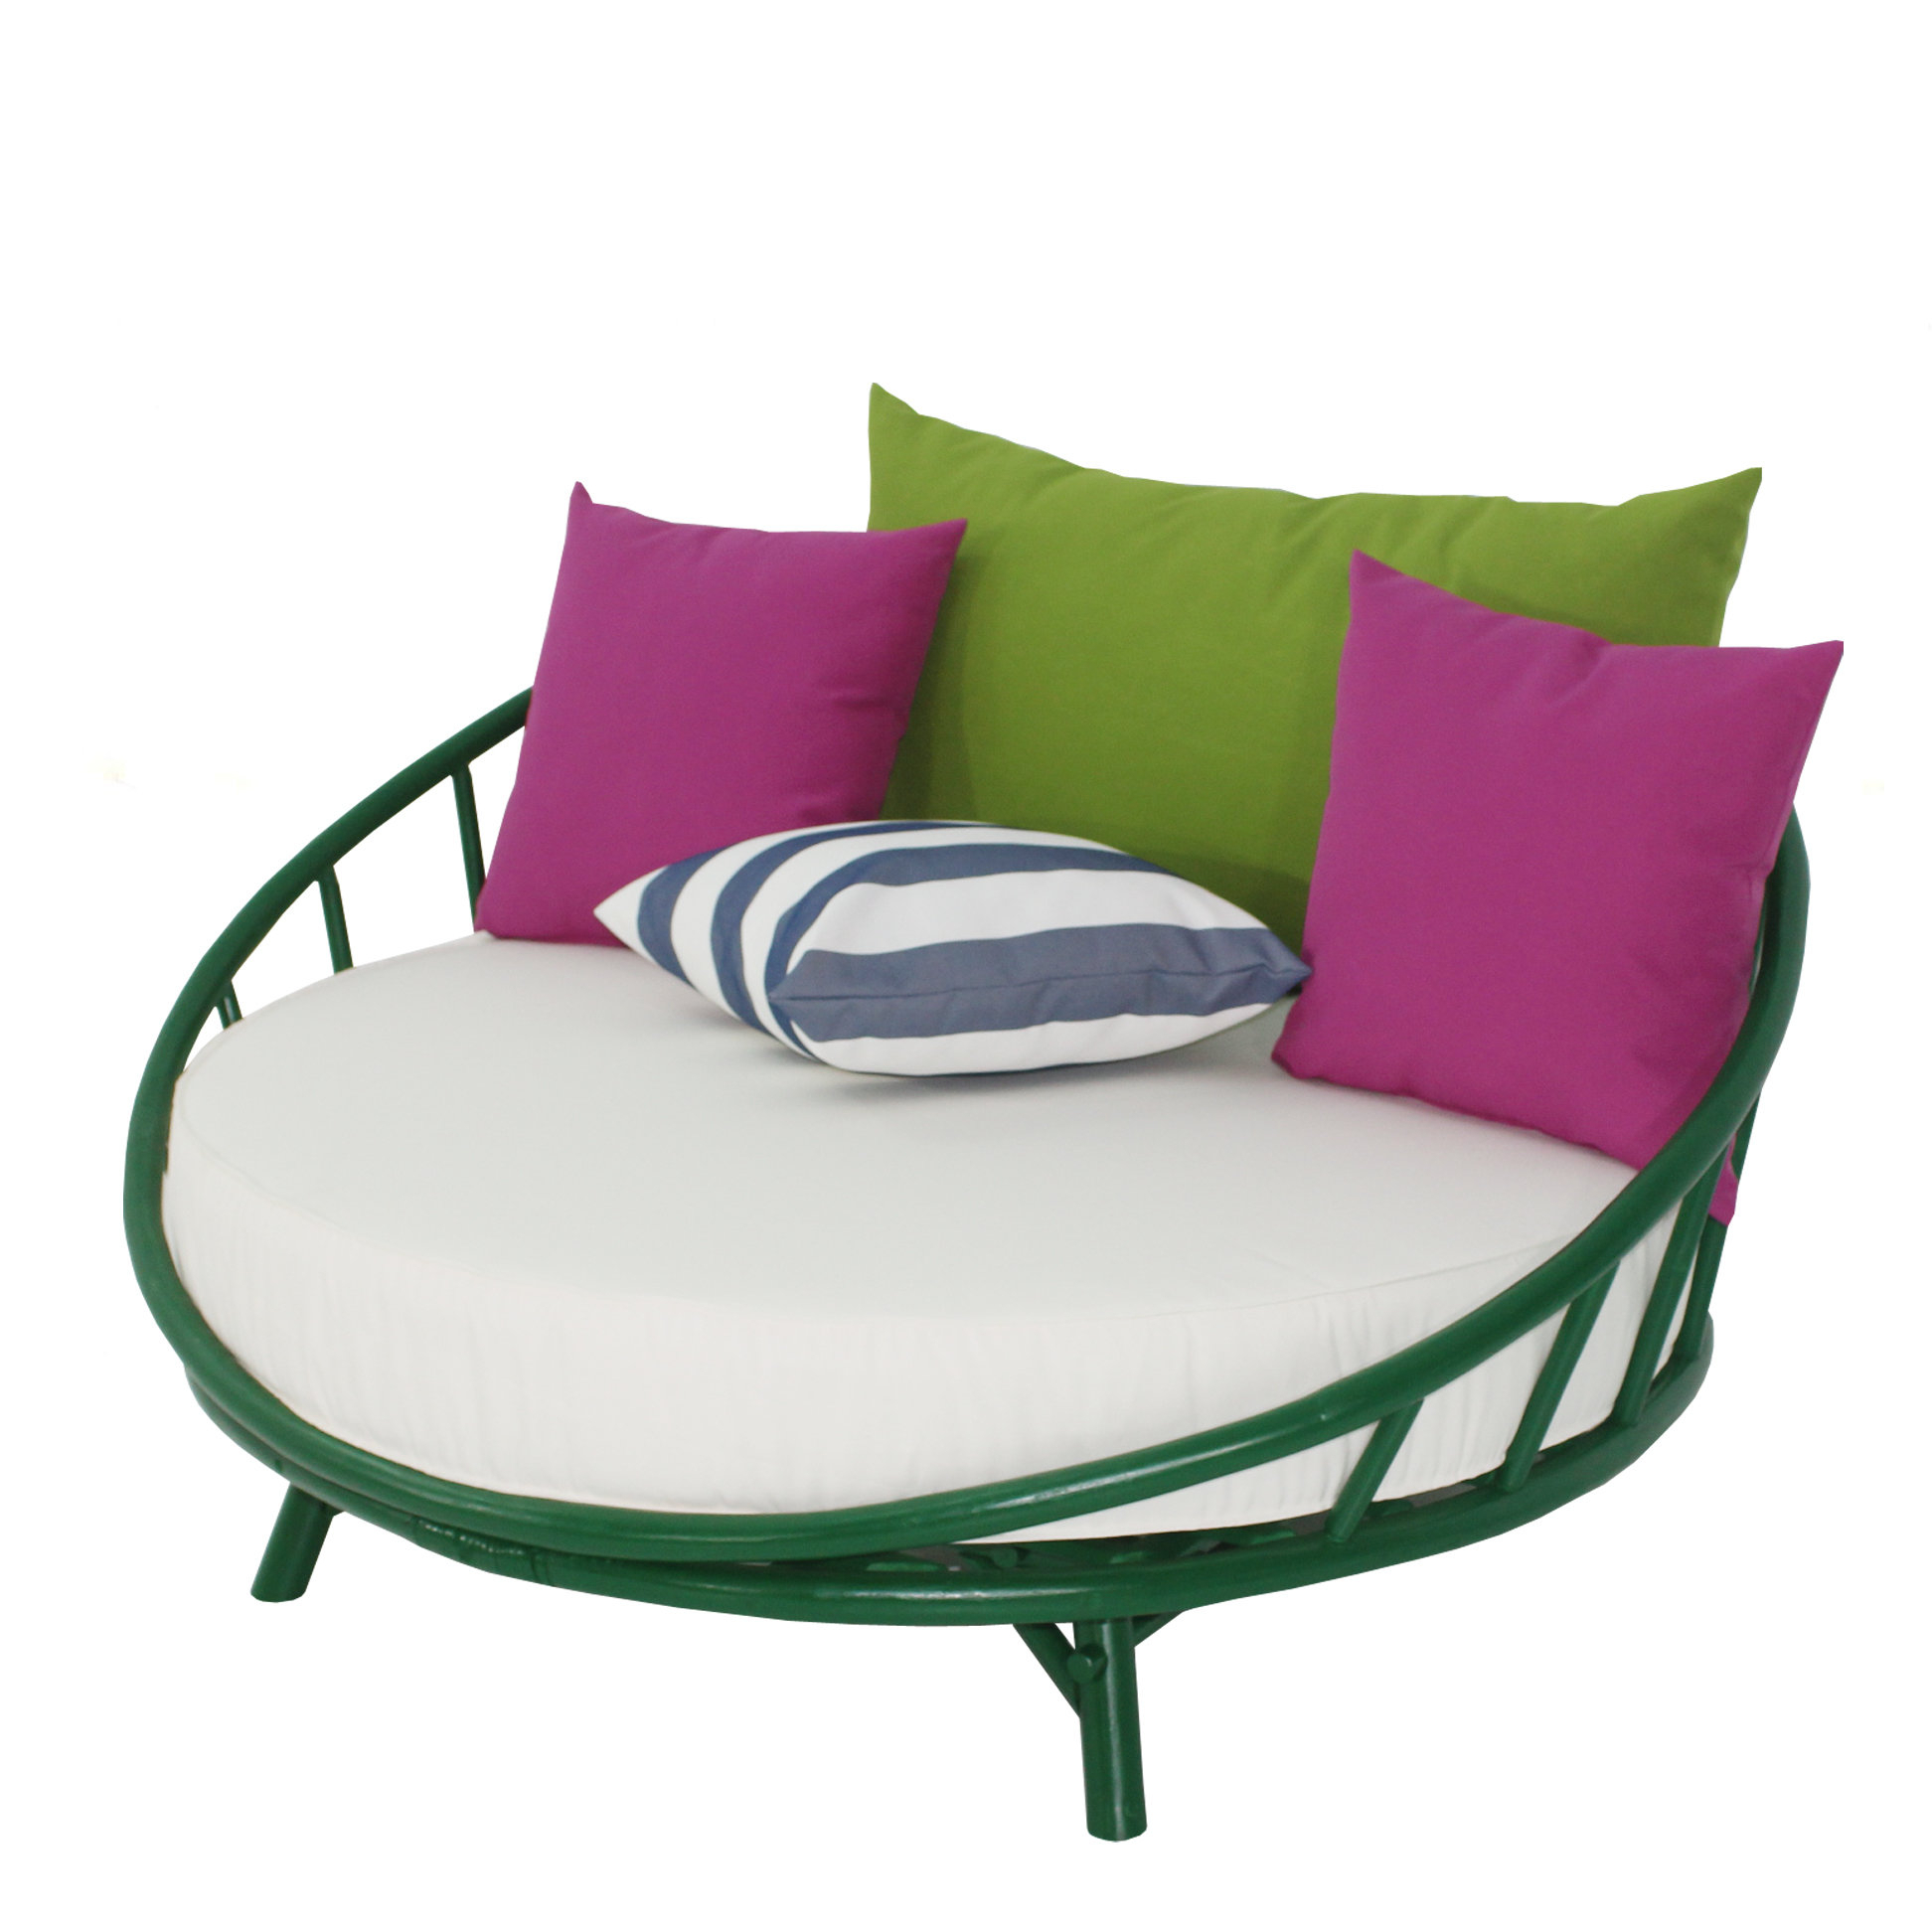 Lavina Outdoor Patio Daybeds With Cushions Regarding Well Known Olu Bamboo Large Round Patio Daybed With Cushions (View 11 of 20)